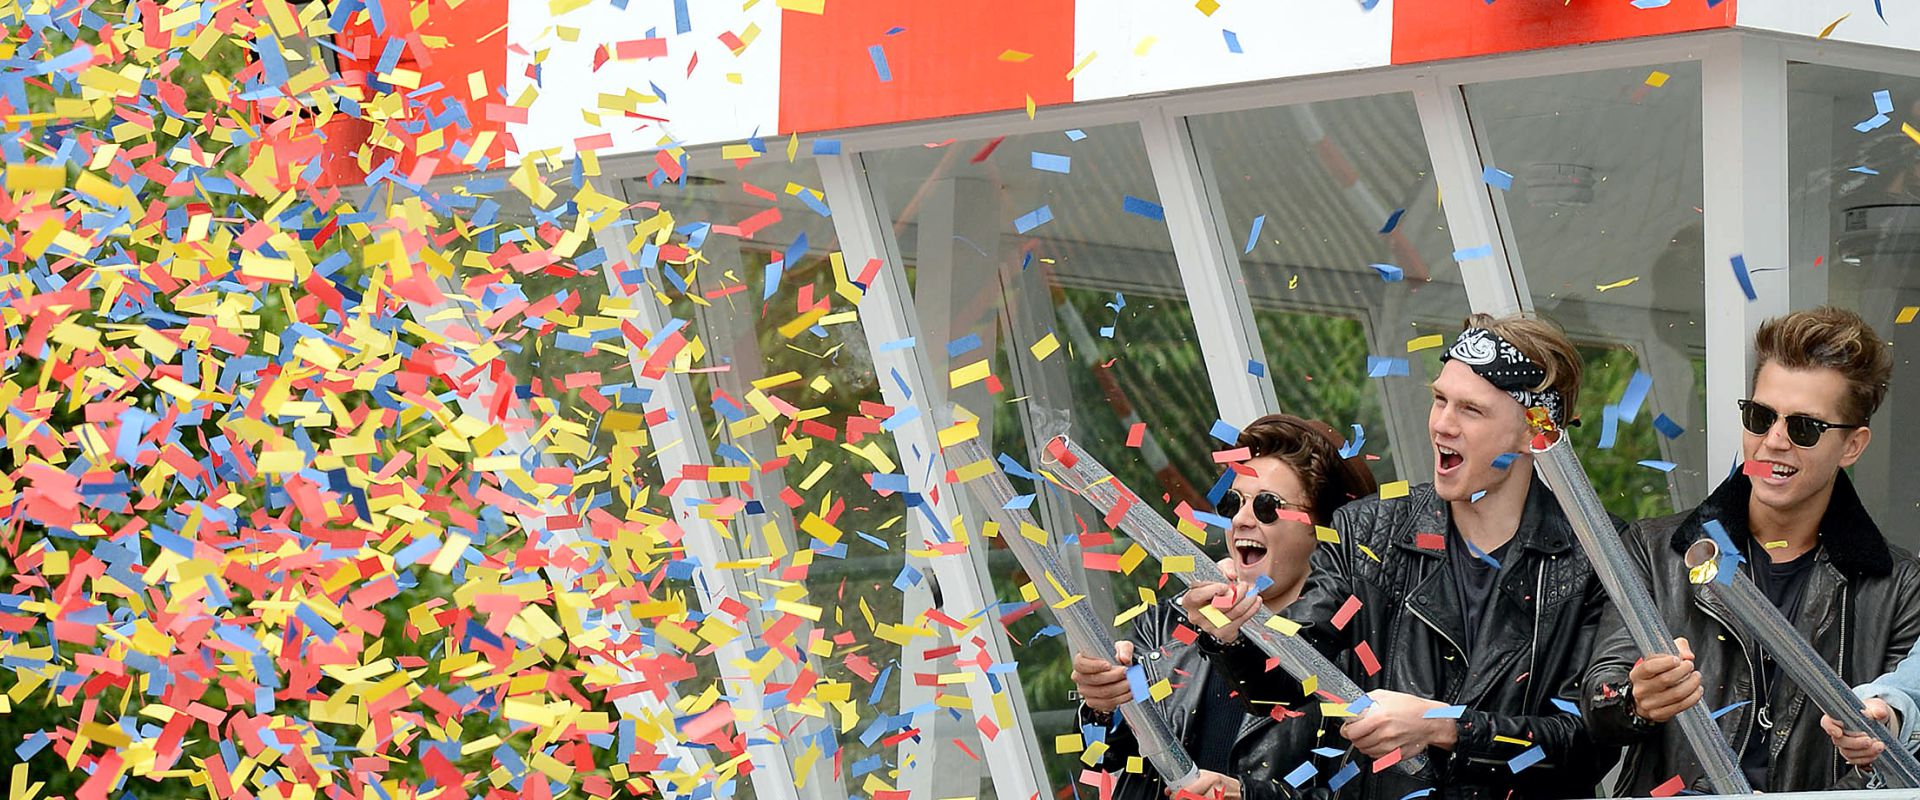 Bring a burst of colour and excitement to the celebrations with a confetti cannon shooting a display of colours chosen by you for a truly personal touch